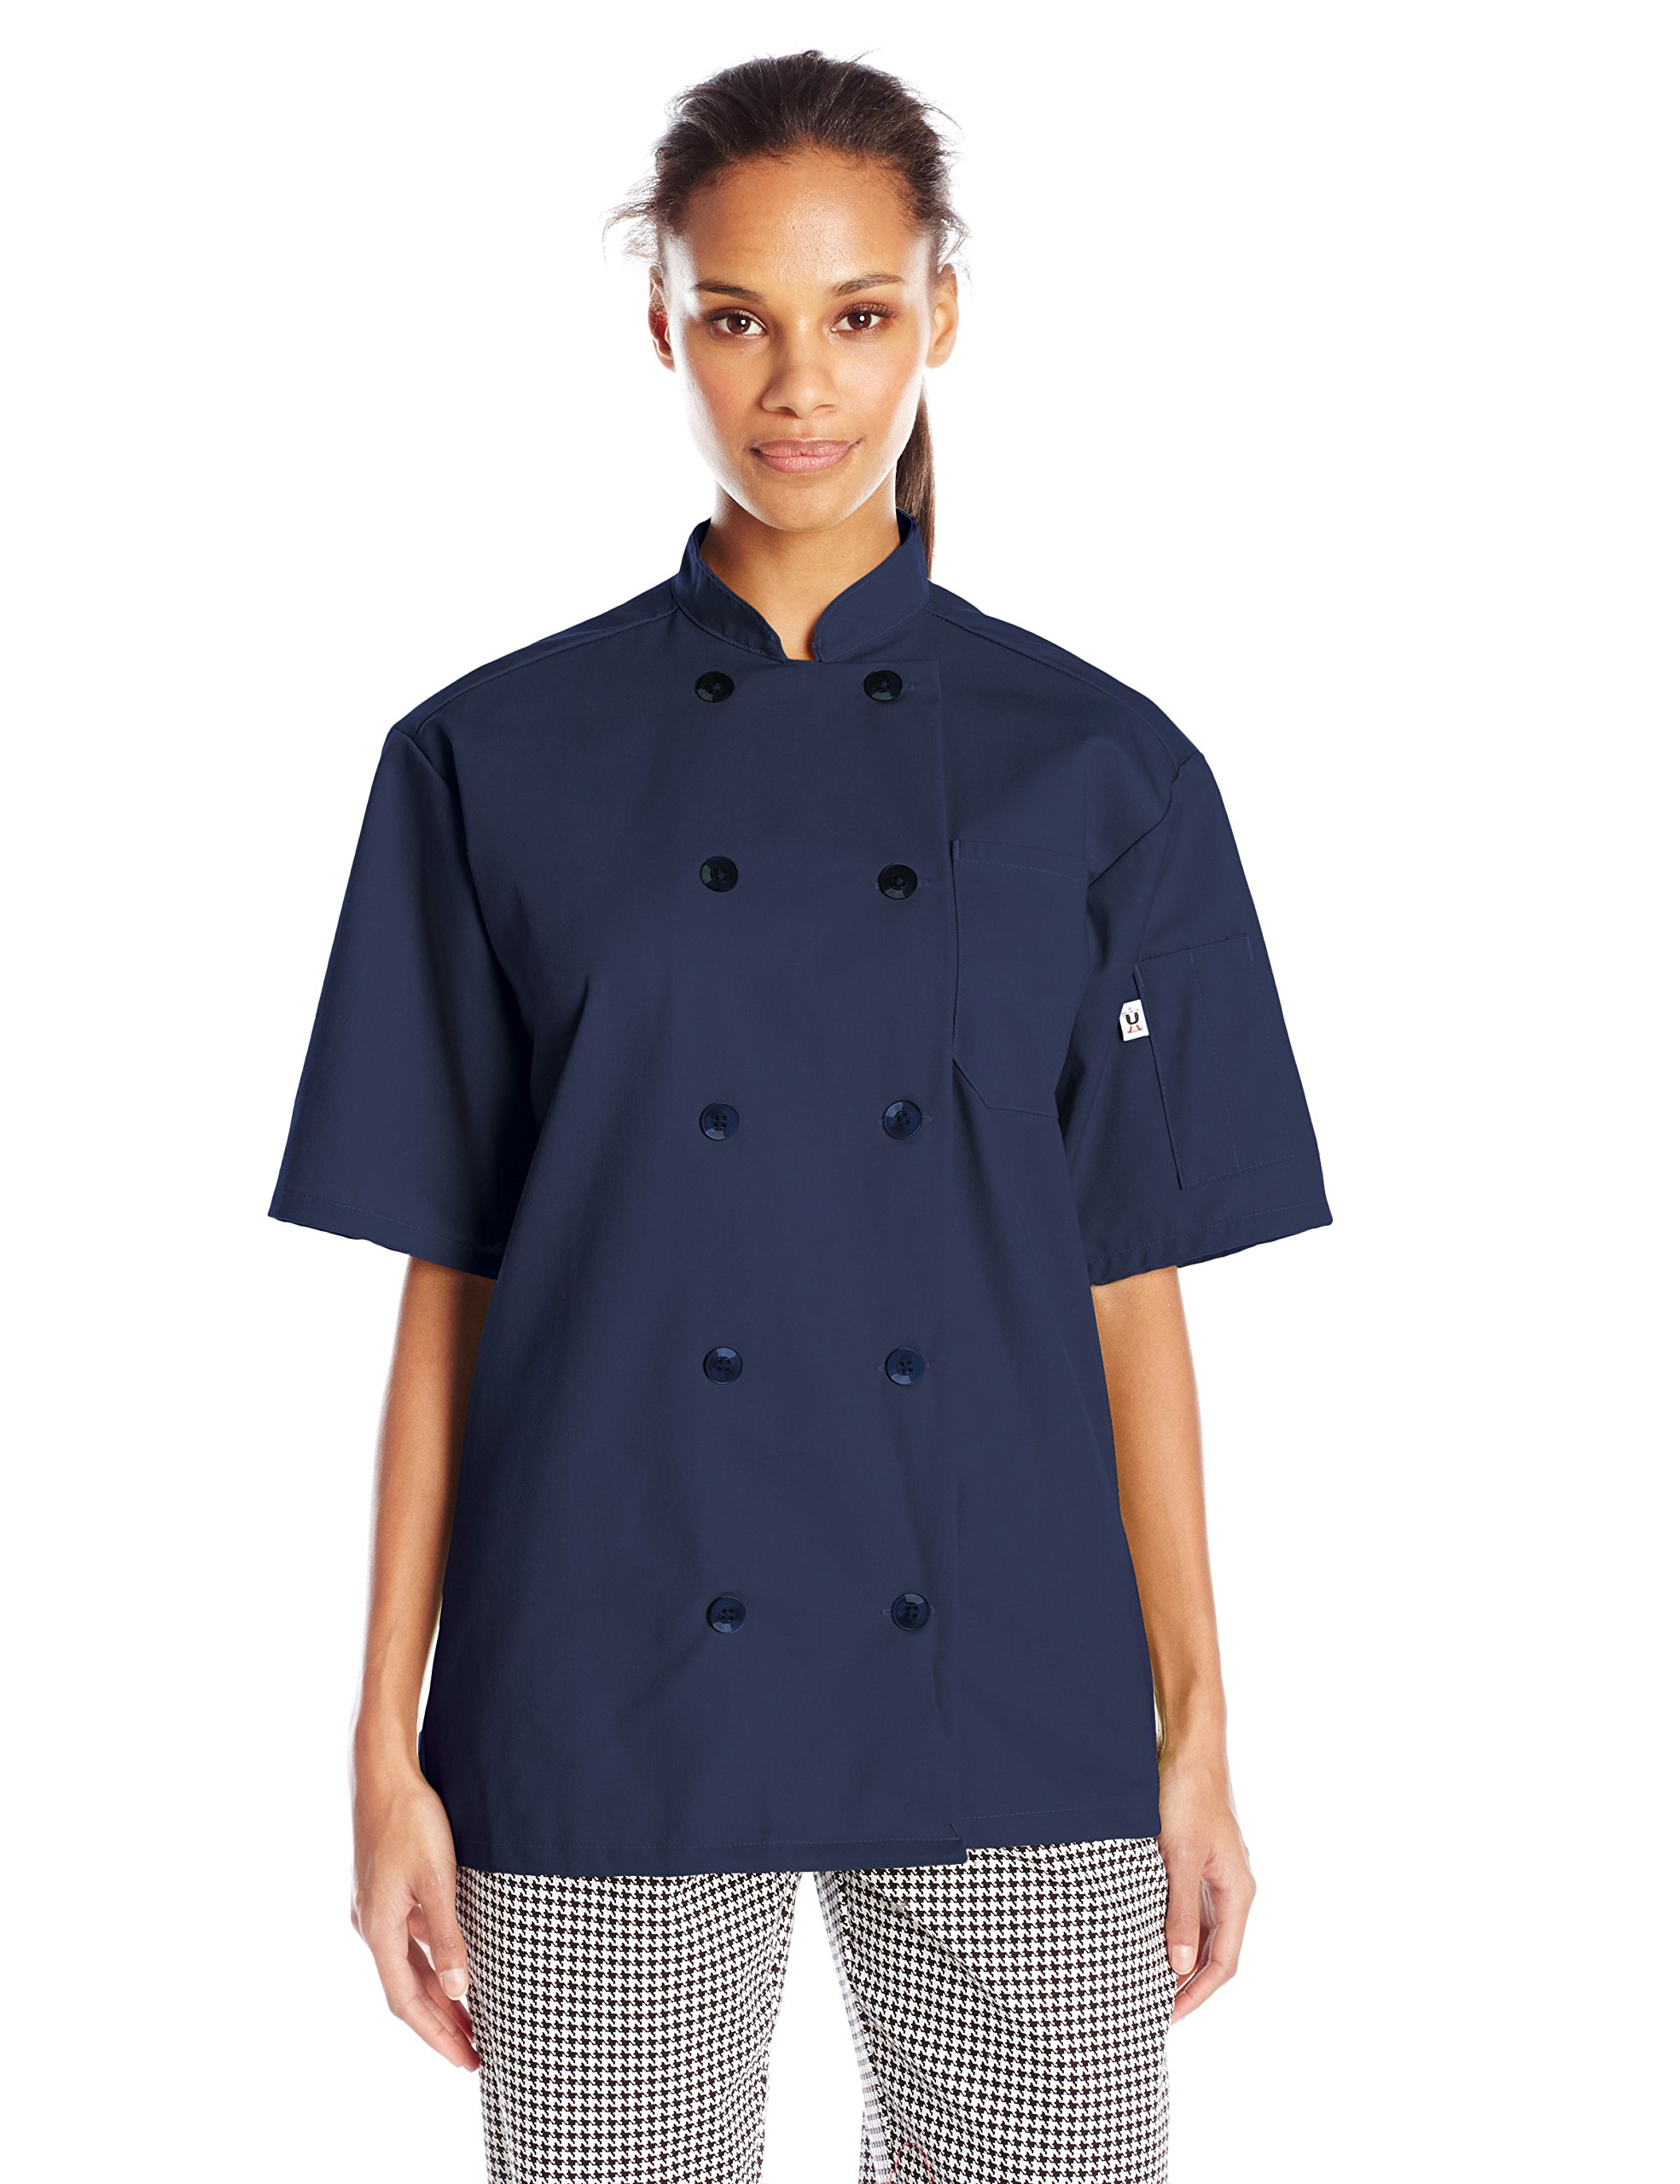 Uncommon Threads Unisex South Beach Chef Coat Short Sleeves, Navy, Medium